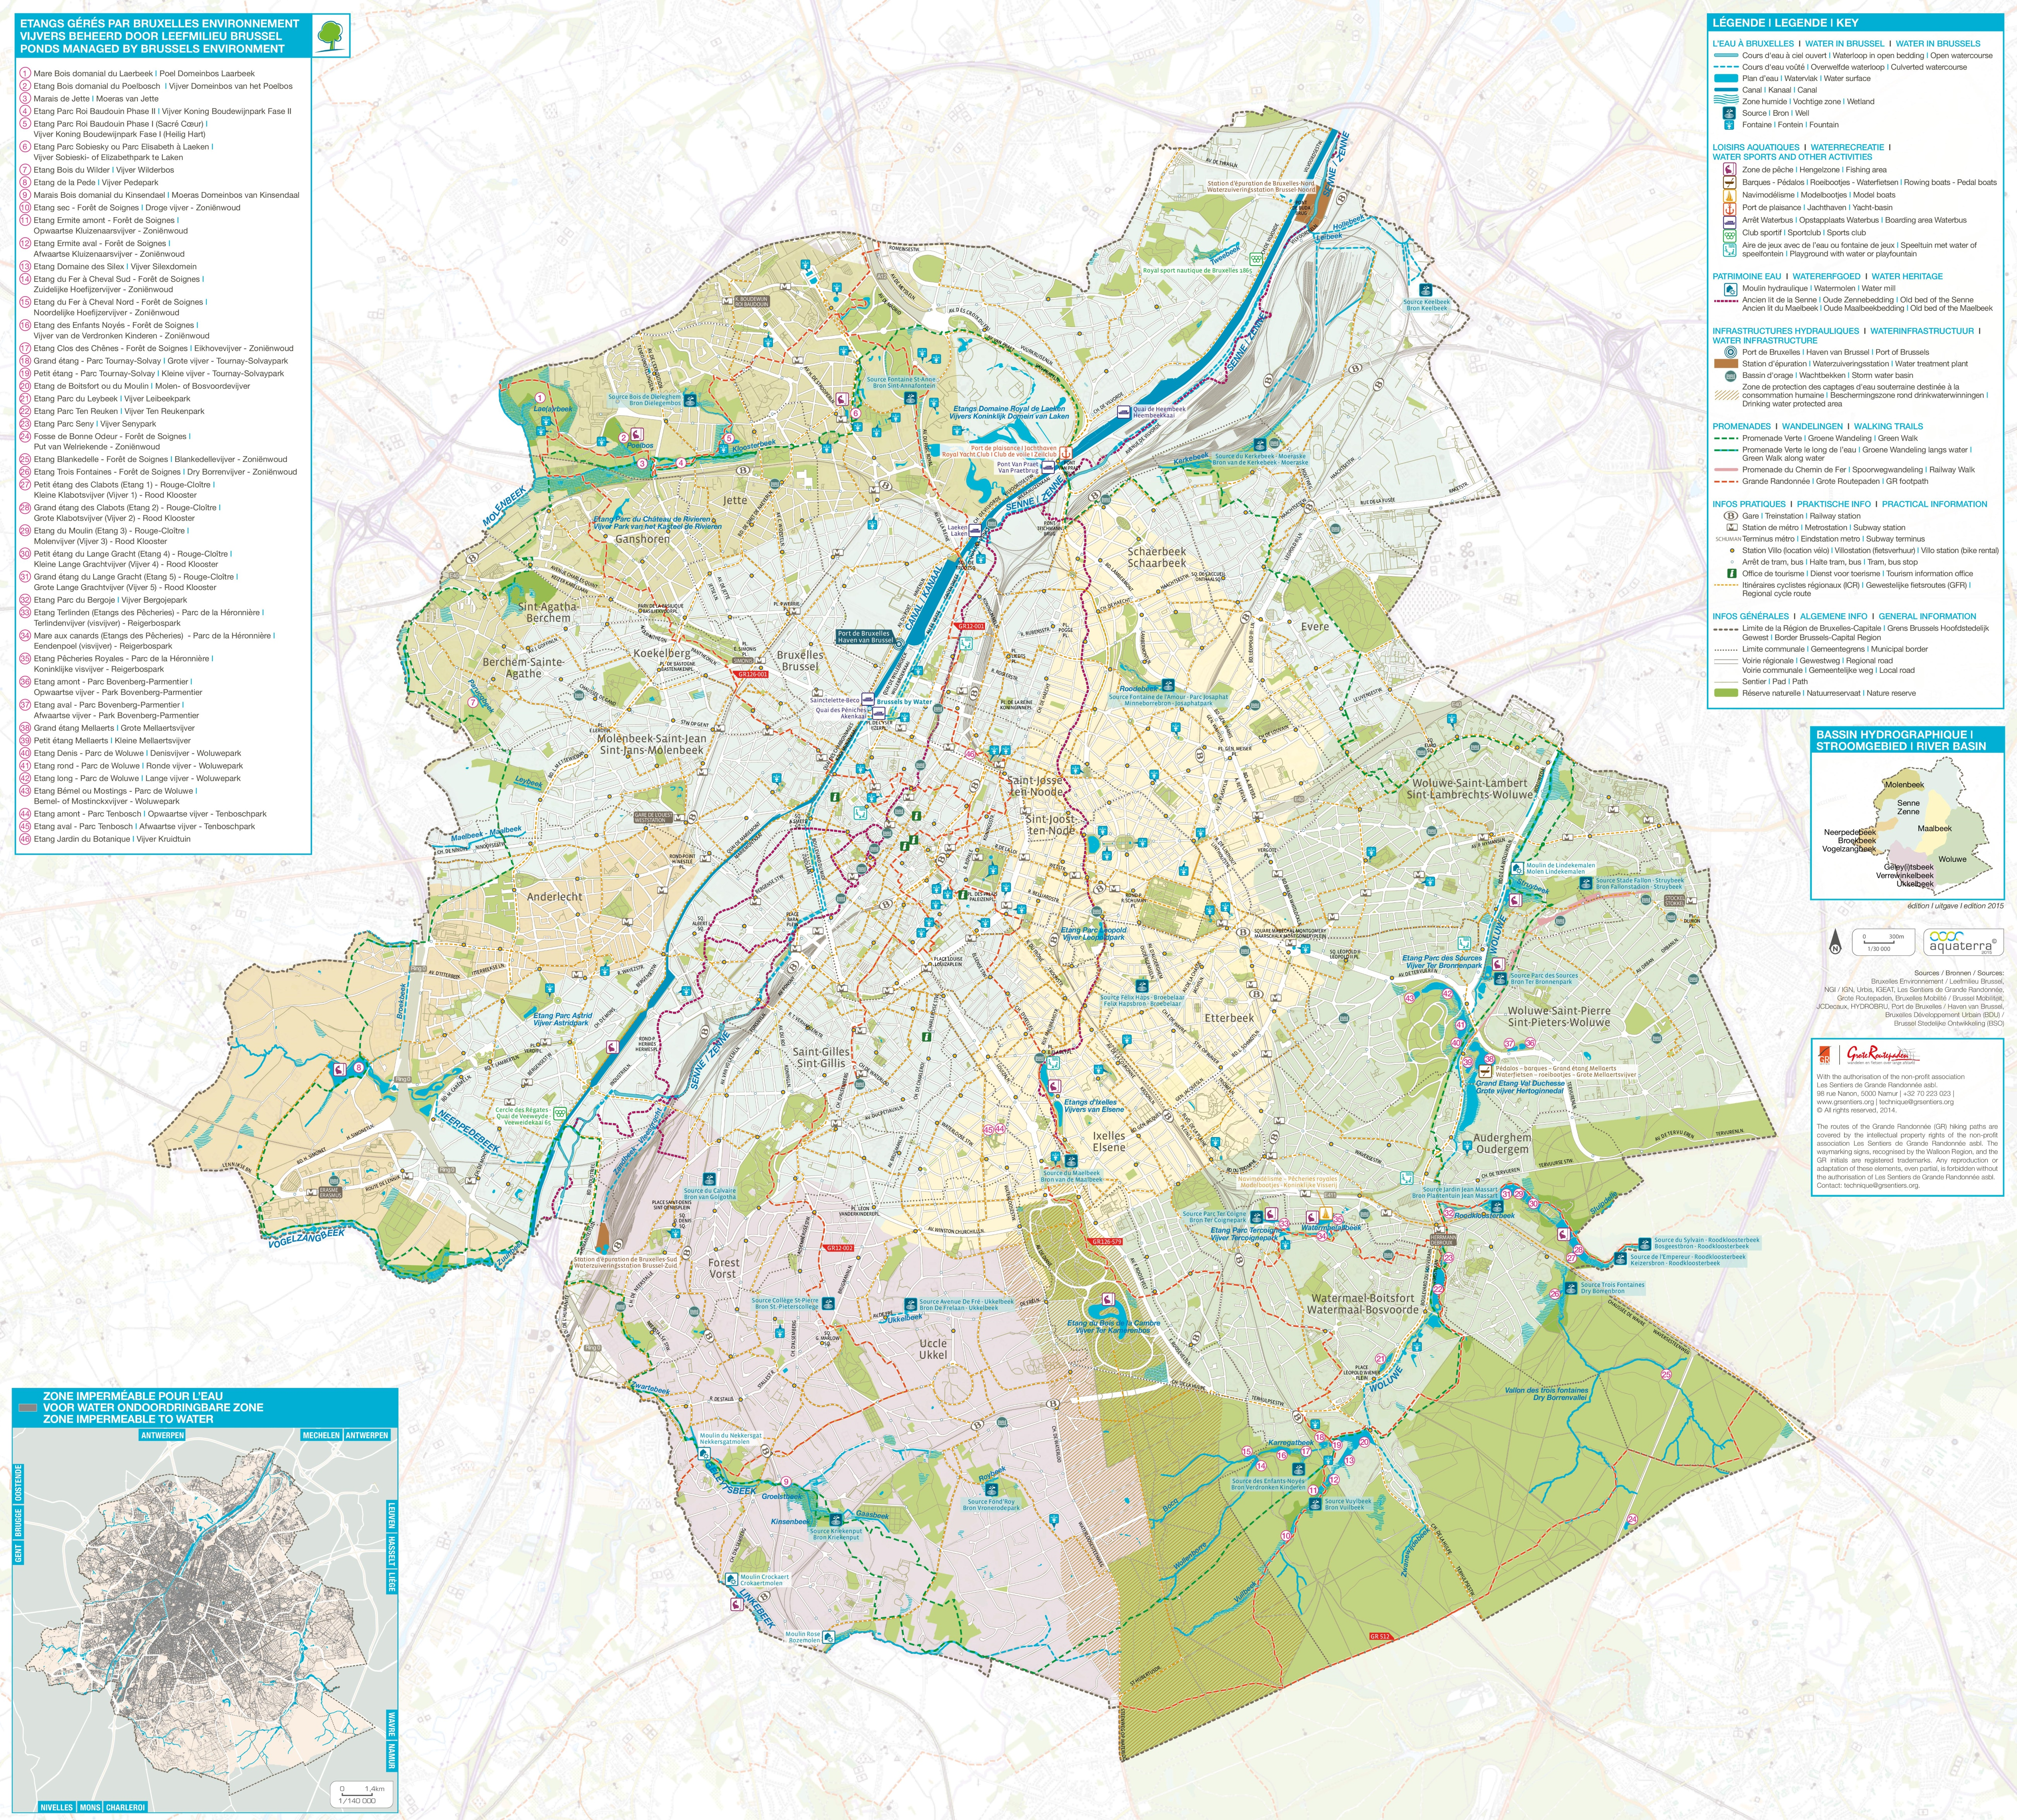 Brussels walking trails map